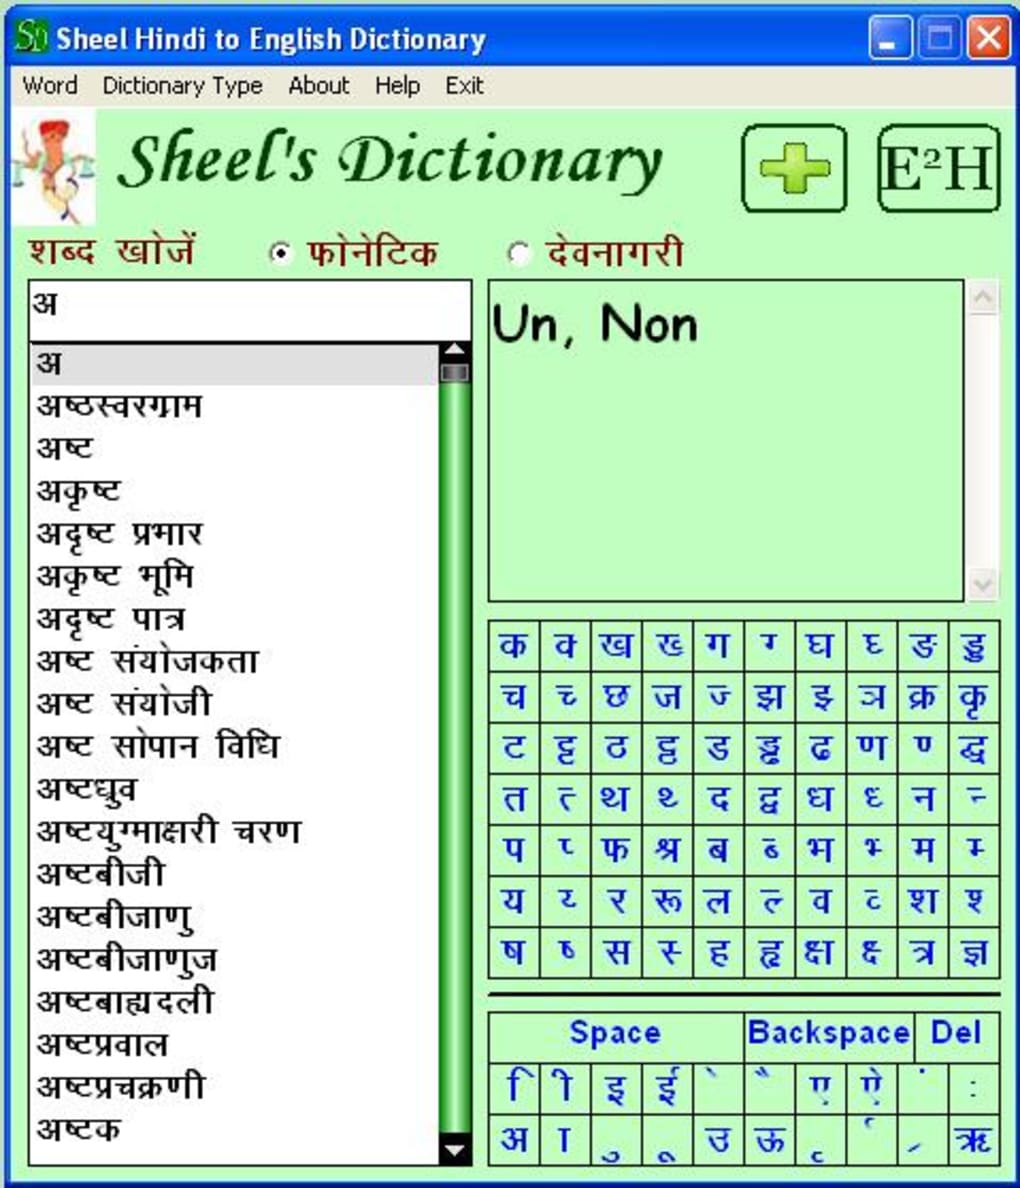 free offline dictionary download for pc windows 10 english to hindi